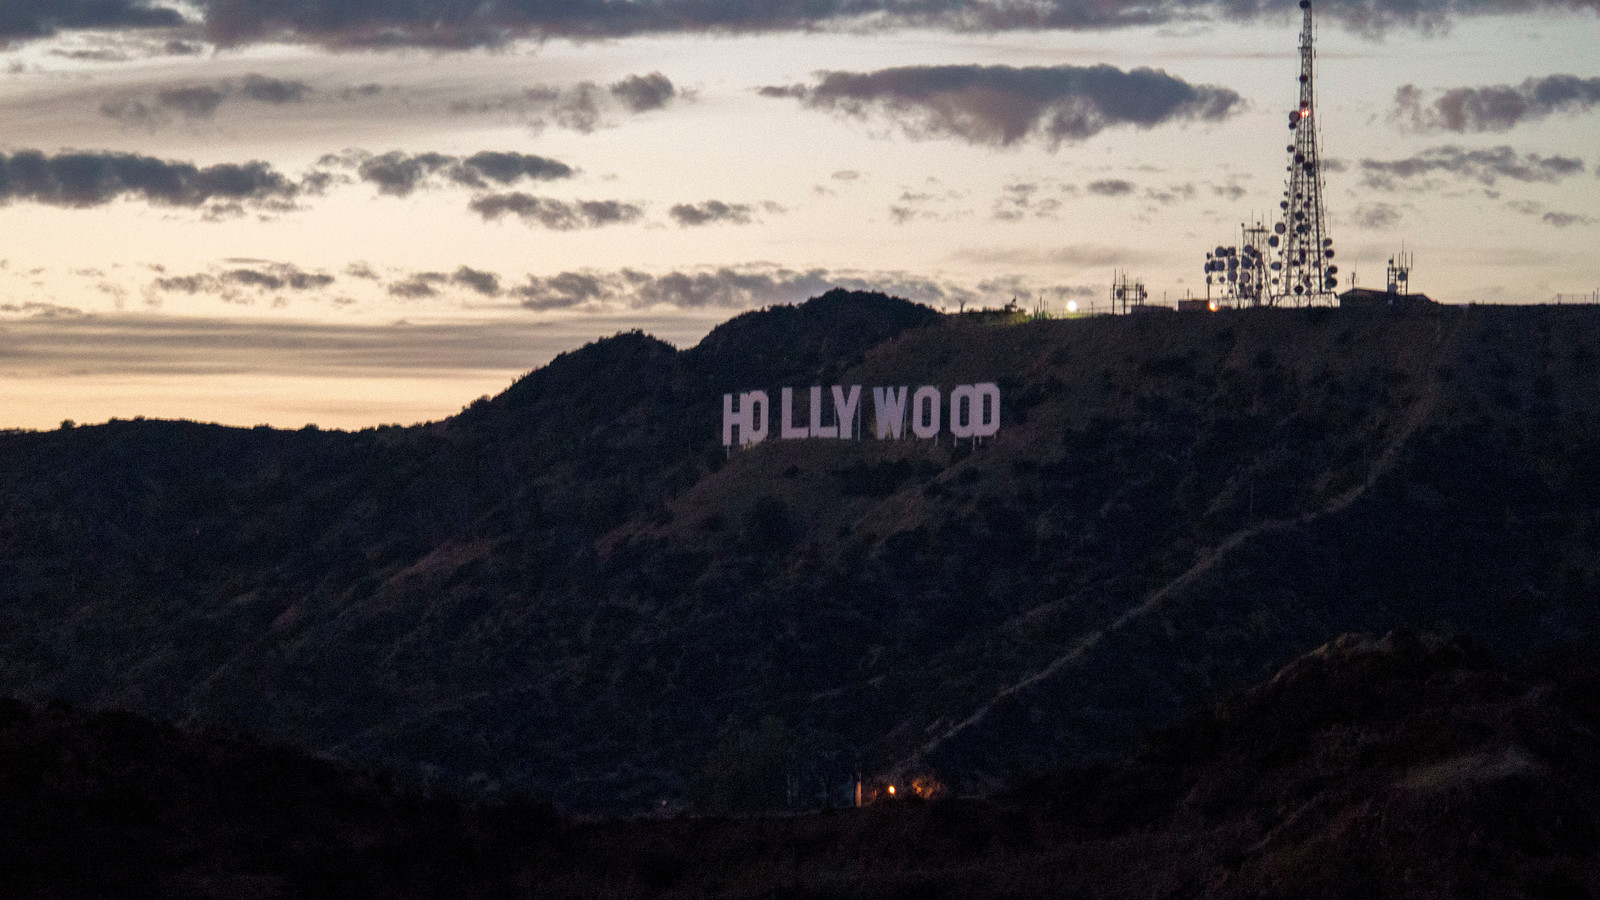 Hollywood sign at dusk at the Griffith Observatory - 2 Days in Los Angeles Itinerary for First Timers